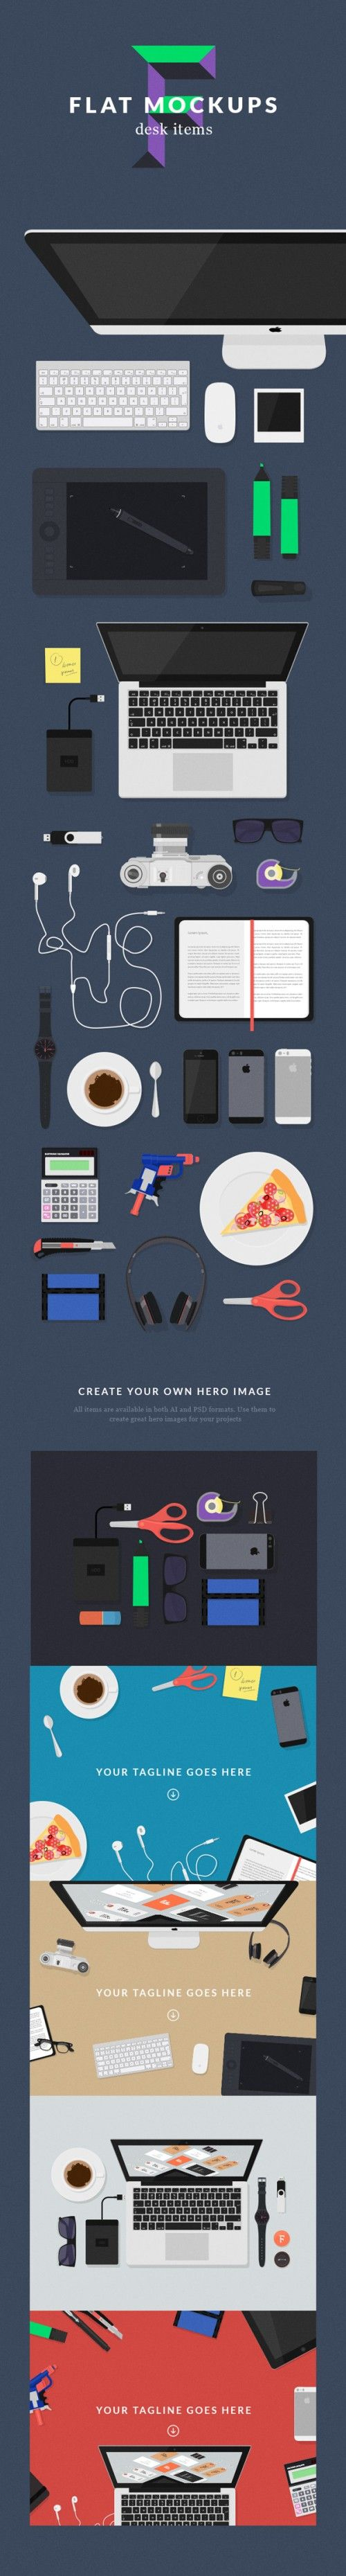 Desk Items Flat Stationary Objects PSD Escritorio vectorizado